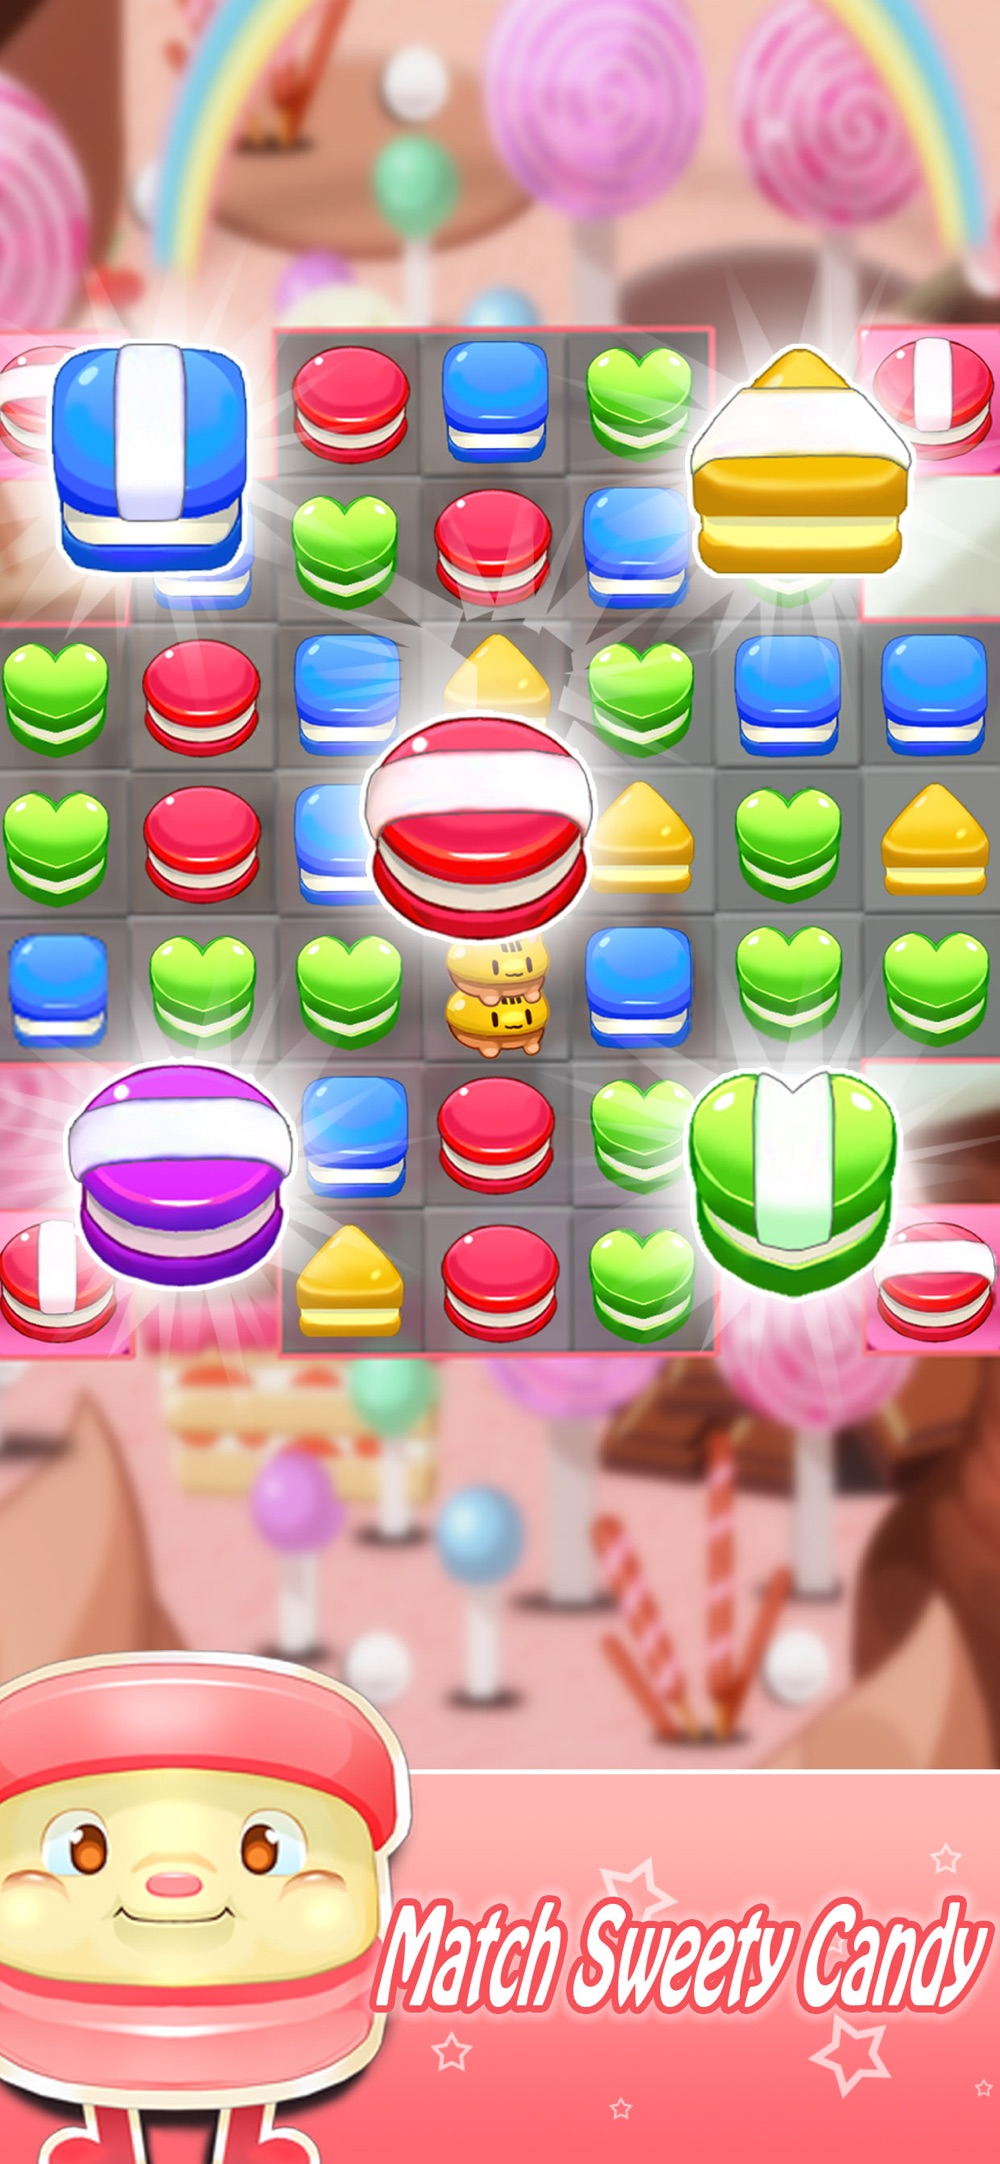 Hack tool for Sweet Candy Party